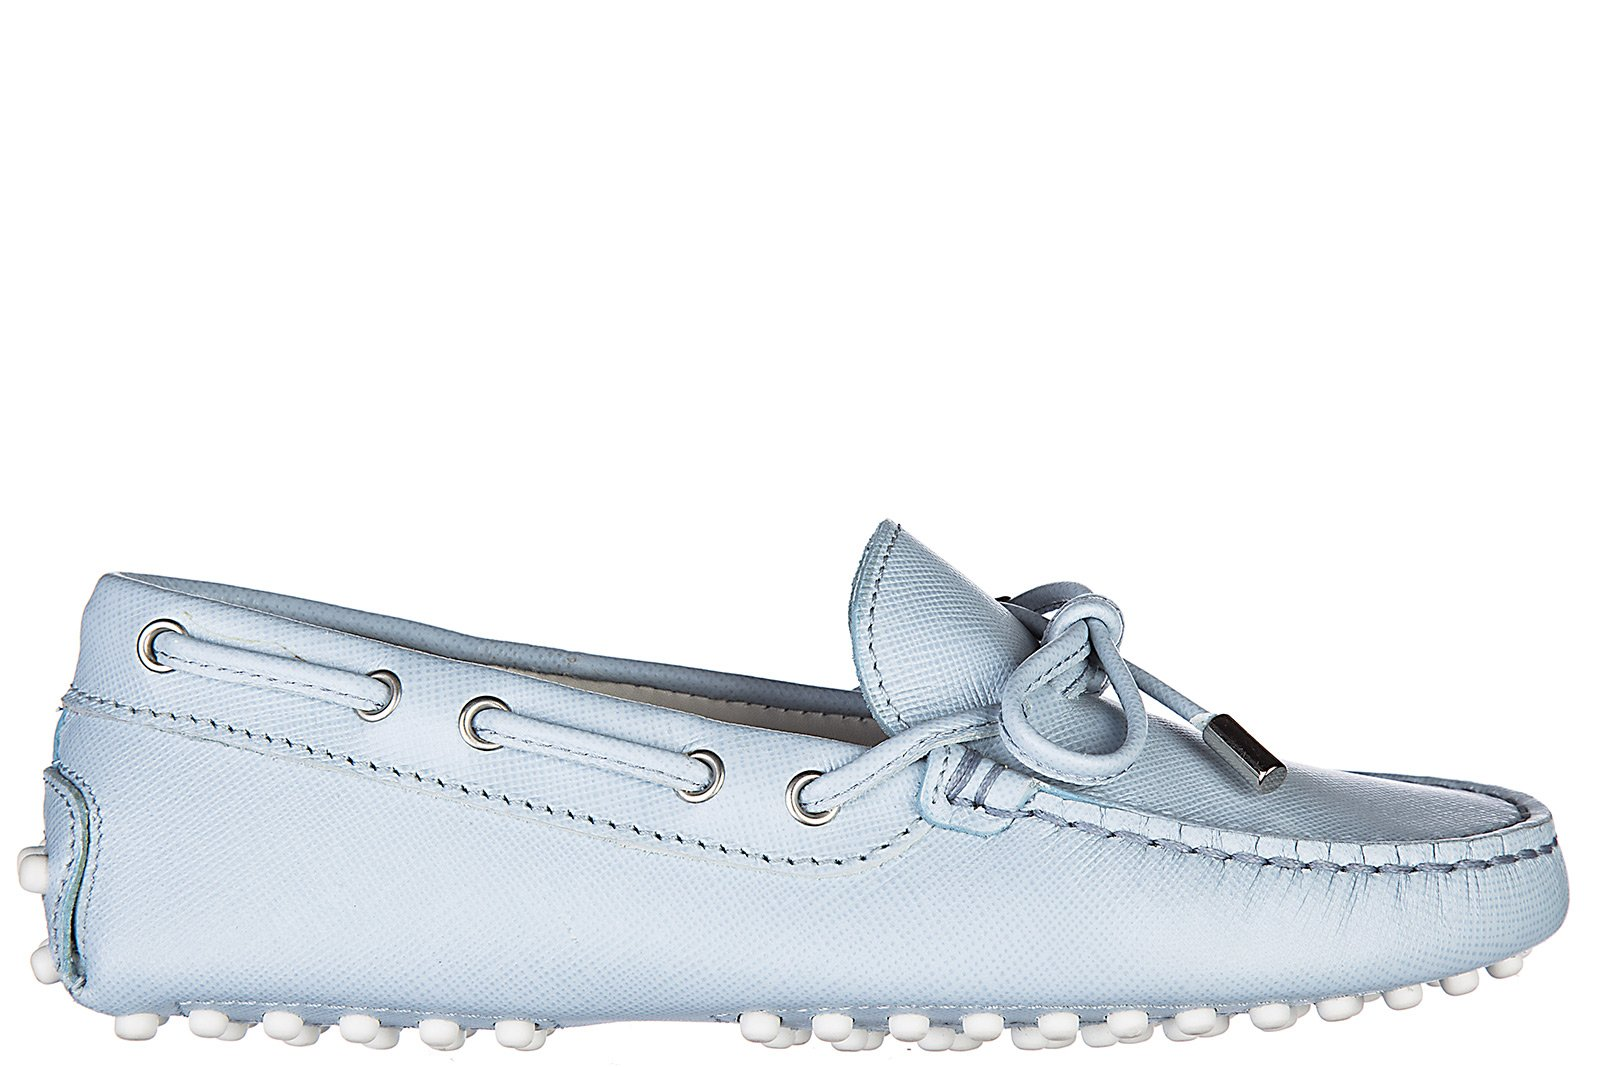 Tod's Boys Shoes Baby Child Loafers Moccassins Leather laccetto occhielli gommini Junior Blu US Size 12 UXC00G050307Y9U0